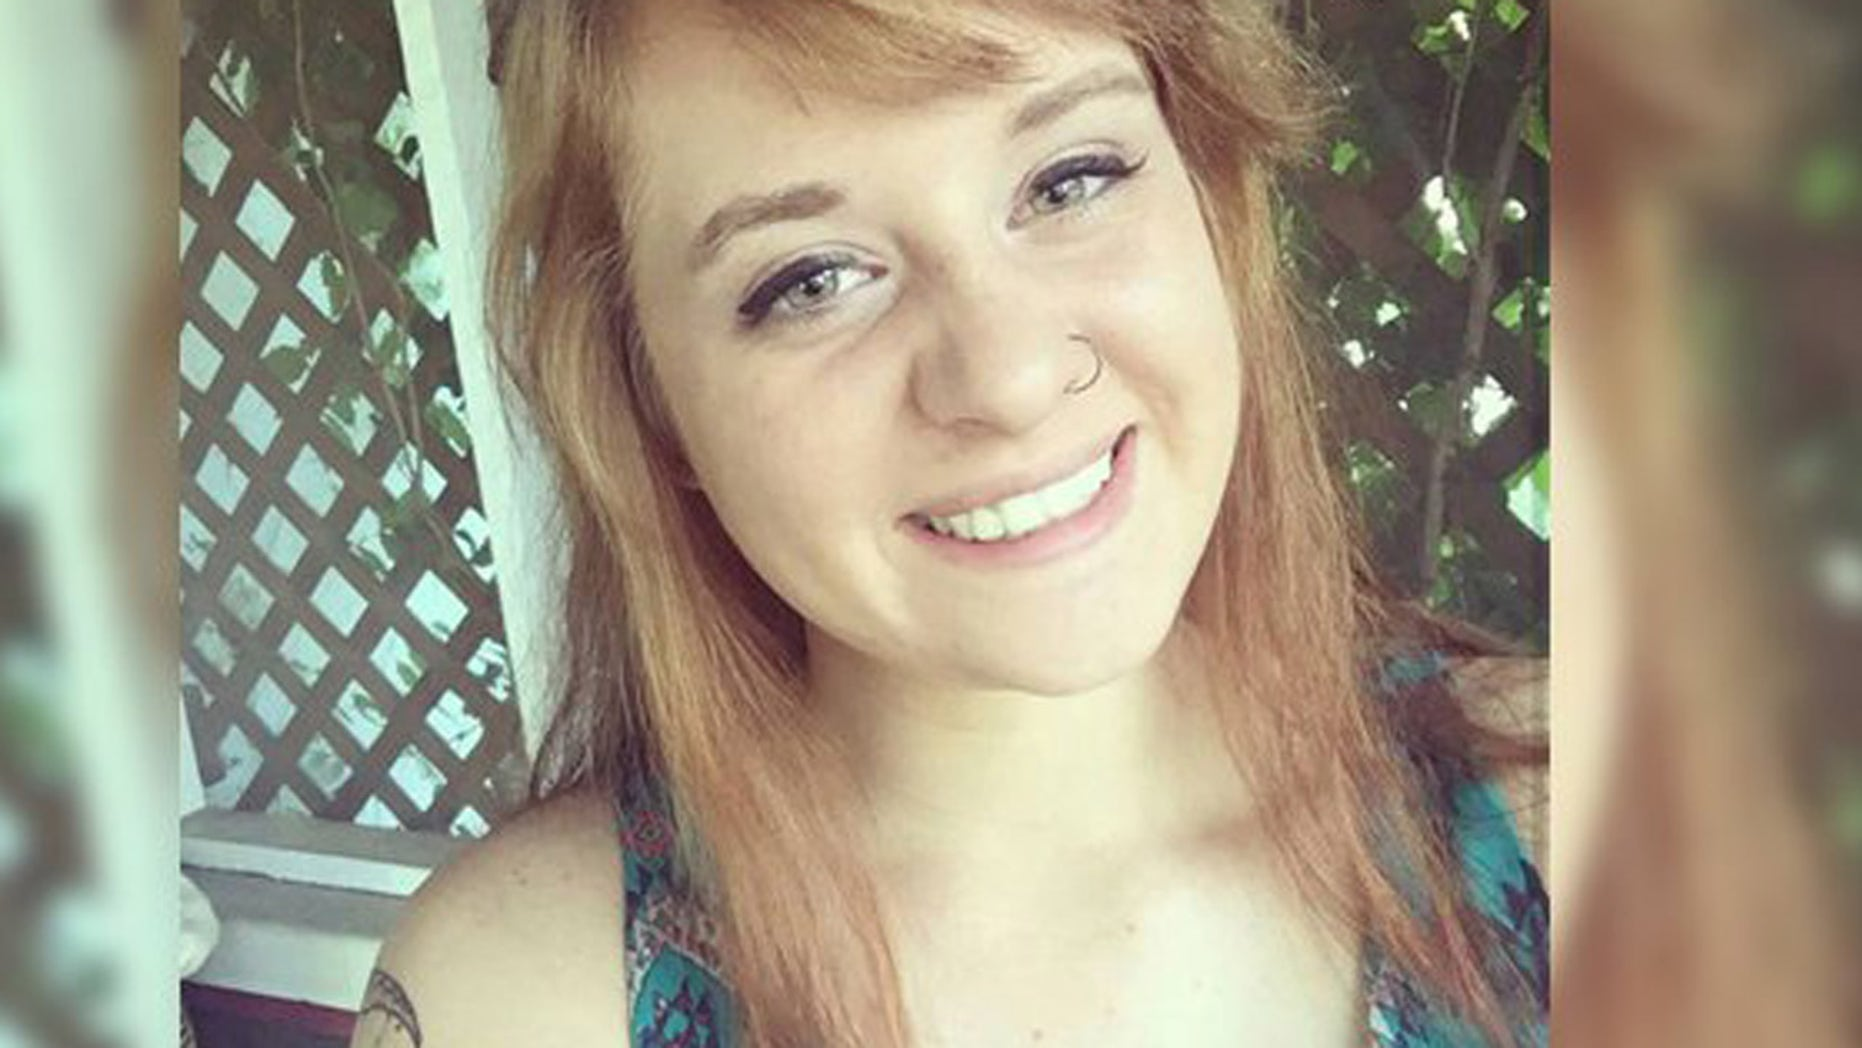 This undated image shows Jessica Runions, who has been missing since Thursday, Sept. 8, 2016.